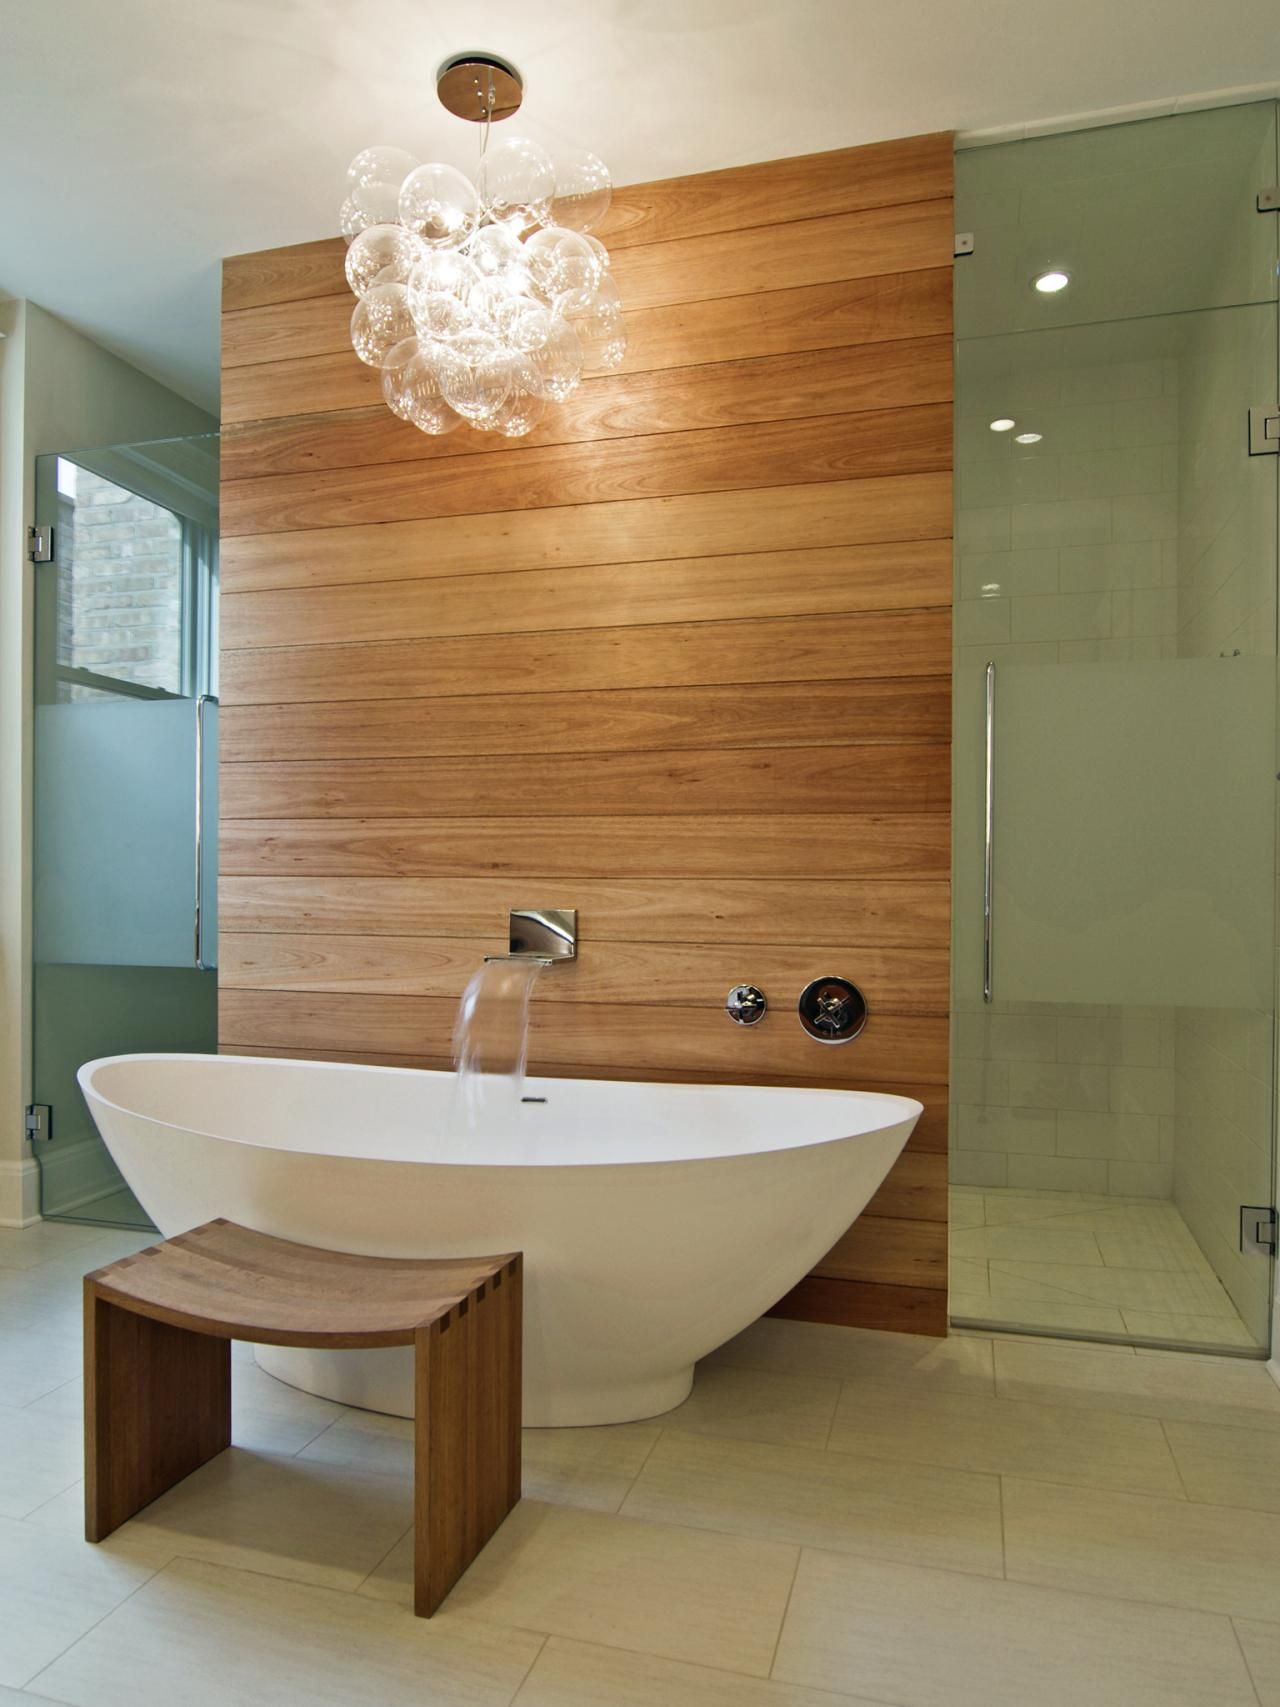 15 dreamy spa inspired bathrooms hgtv freestanding tub and cedar walls. Black Bedroom Furniture Sets. Home Design Ideas